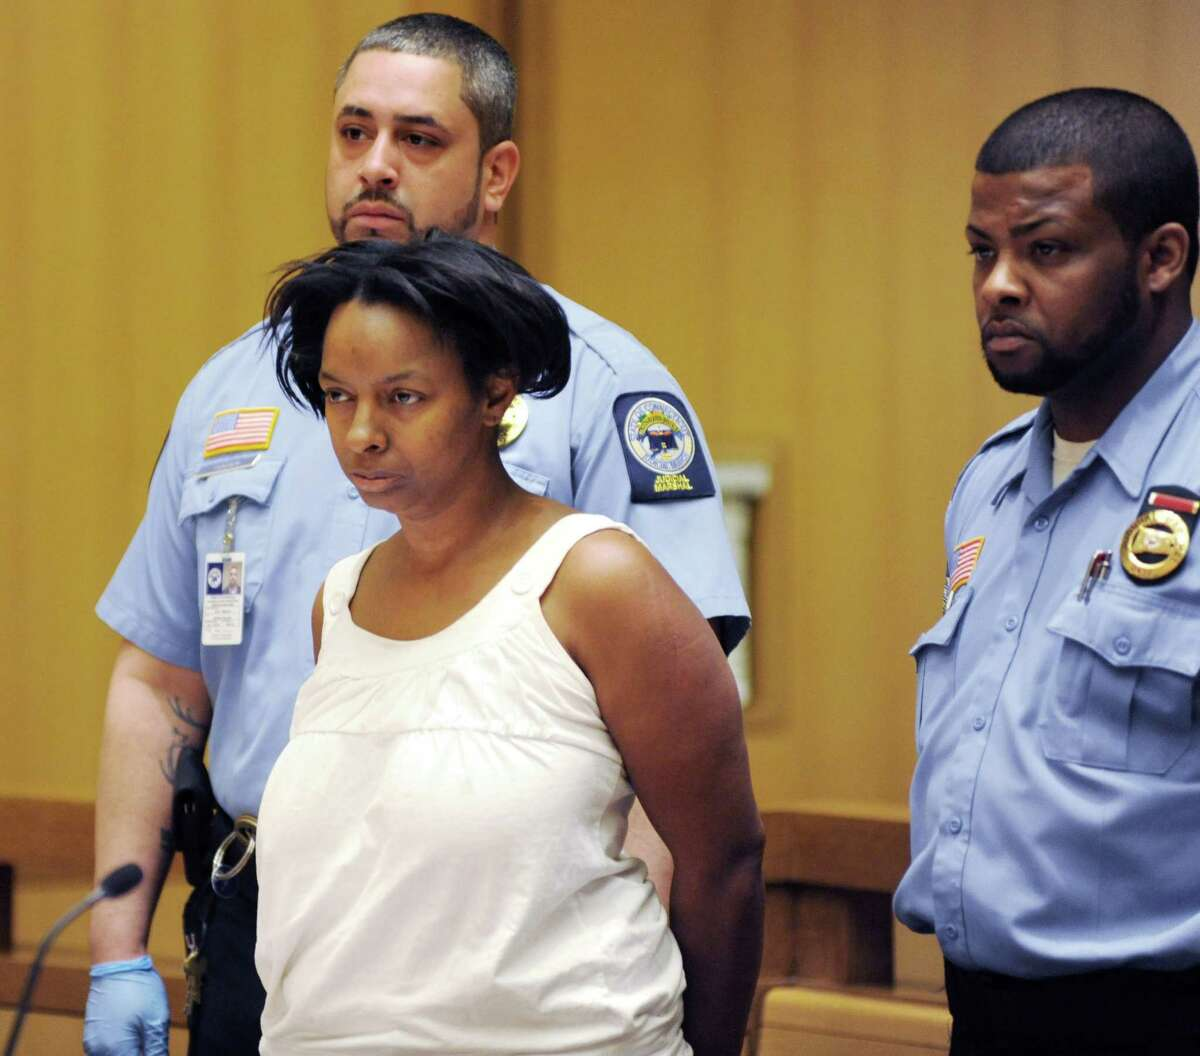 Suspect Yolanda McDowell, 45, of Durant St., Stamford is arraigned on Monday April 21, 2014 at state superior court in Stamford, Conn in last night's hit-and-run that killed a 70-year-old woman.Victim was mother of SPD 2002 Officer of the Year Angel Gonzales.